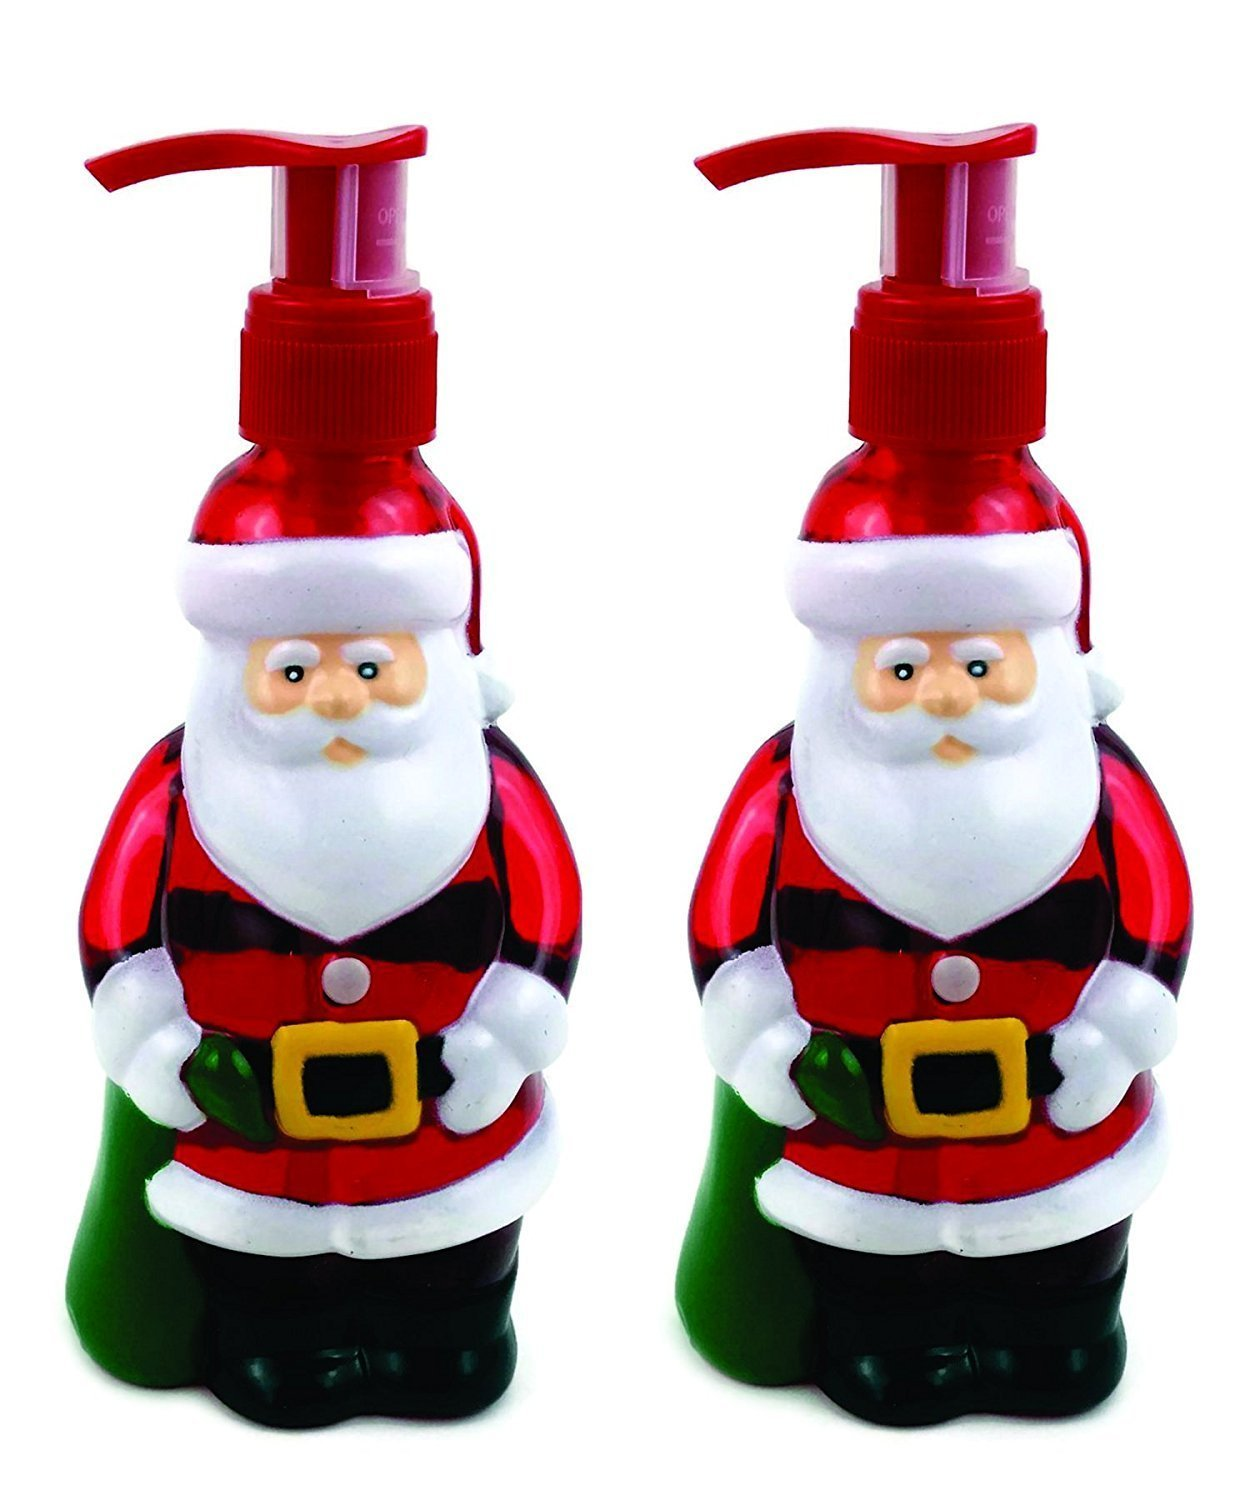 Santa Claus Holiday Hand Soaps, 2pk. Pack of 2 Santa-shaped Dispensers with Sugar-coated Apple Scent. Each bottle approx. 10 fluid oz Liquid Hand Soap.